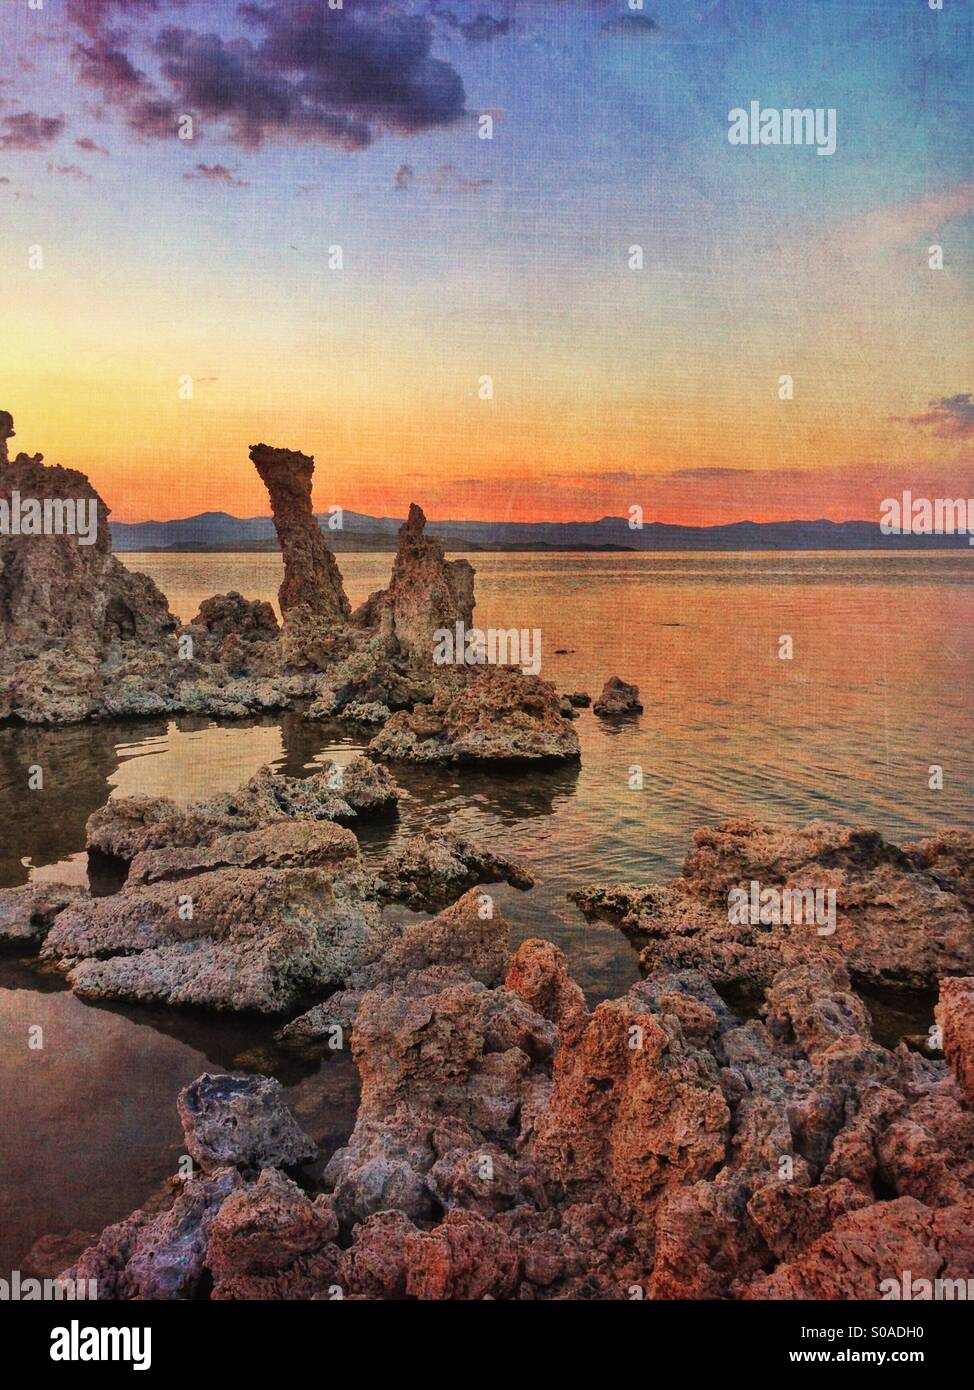 Mono Lake at sunset. - Stock Image